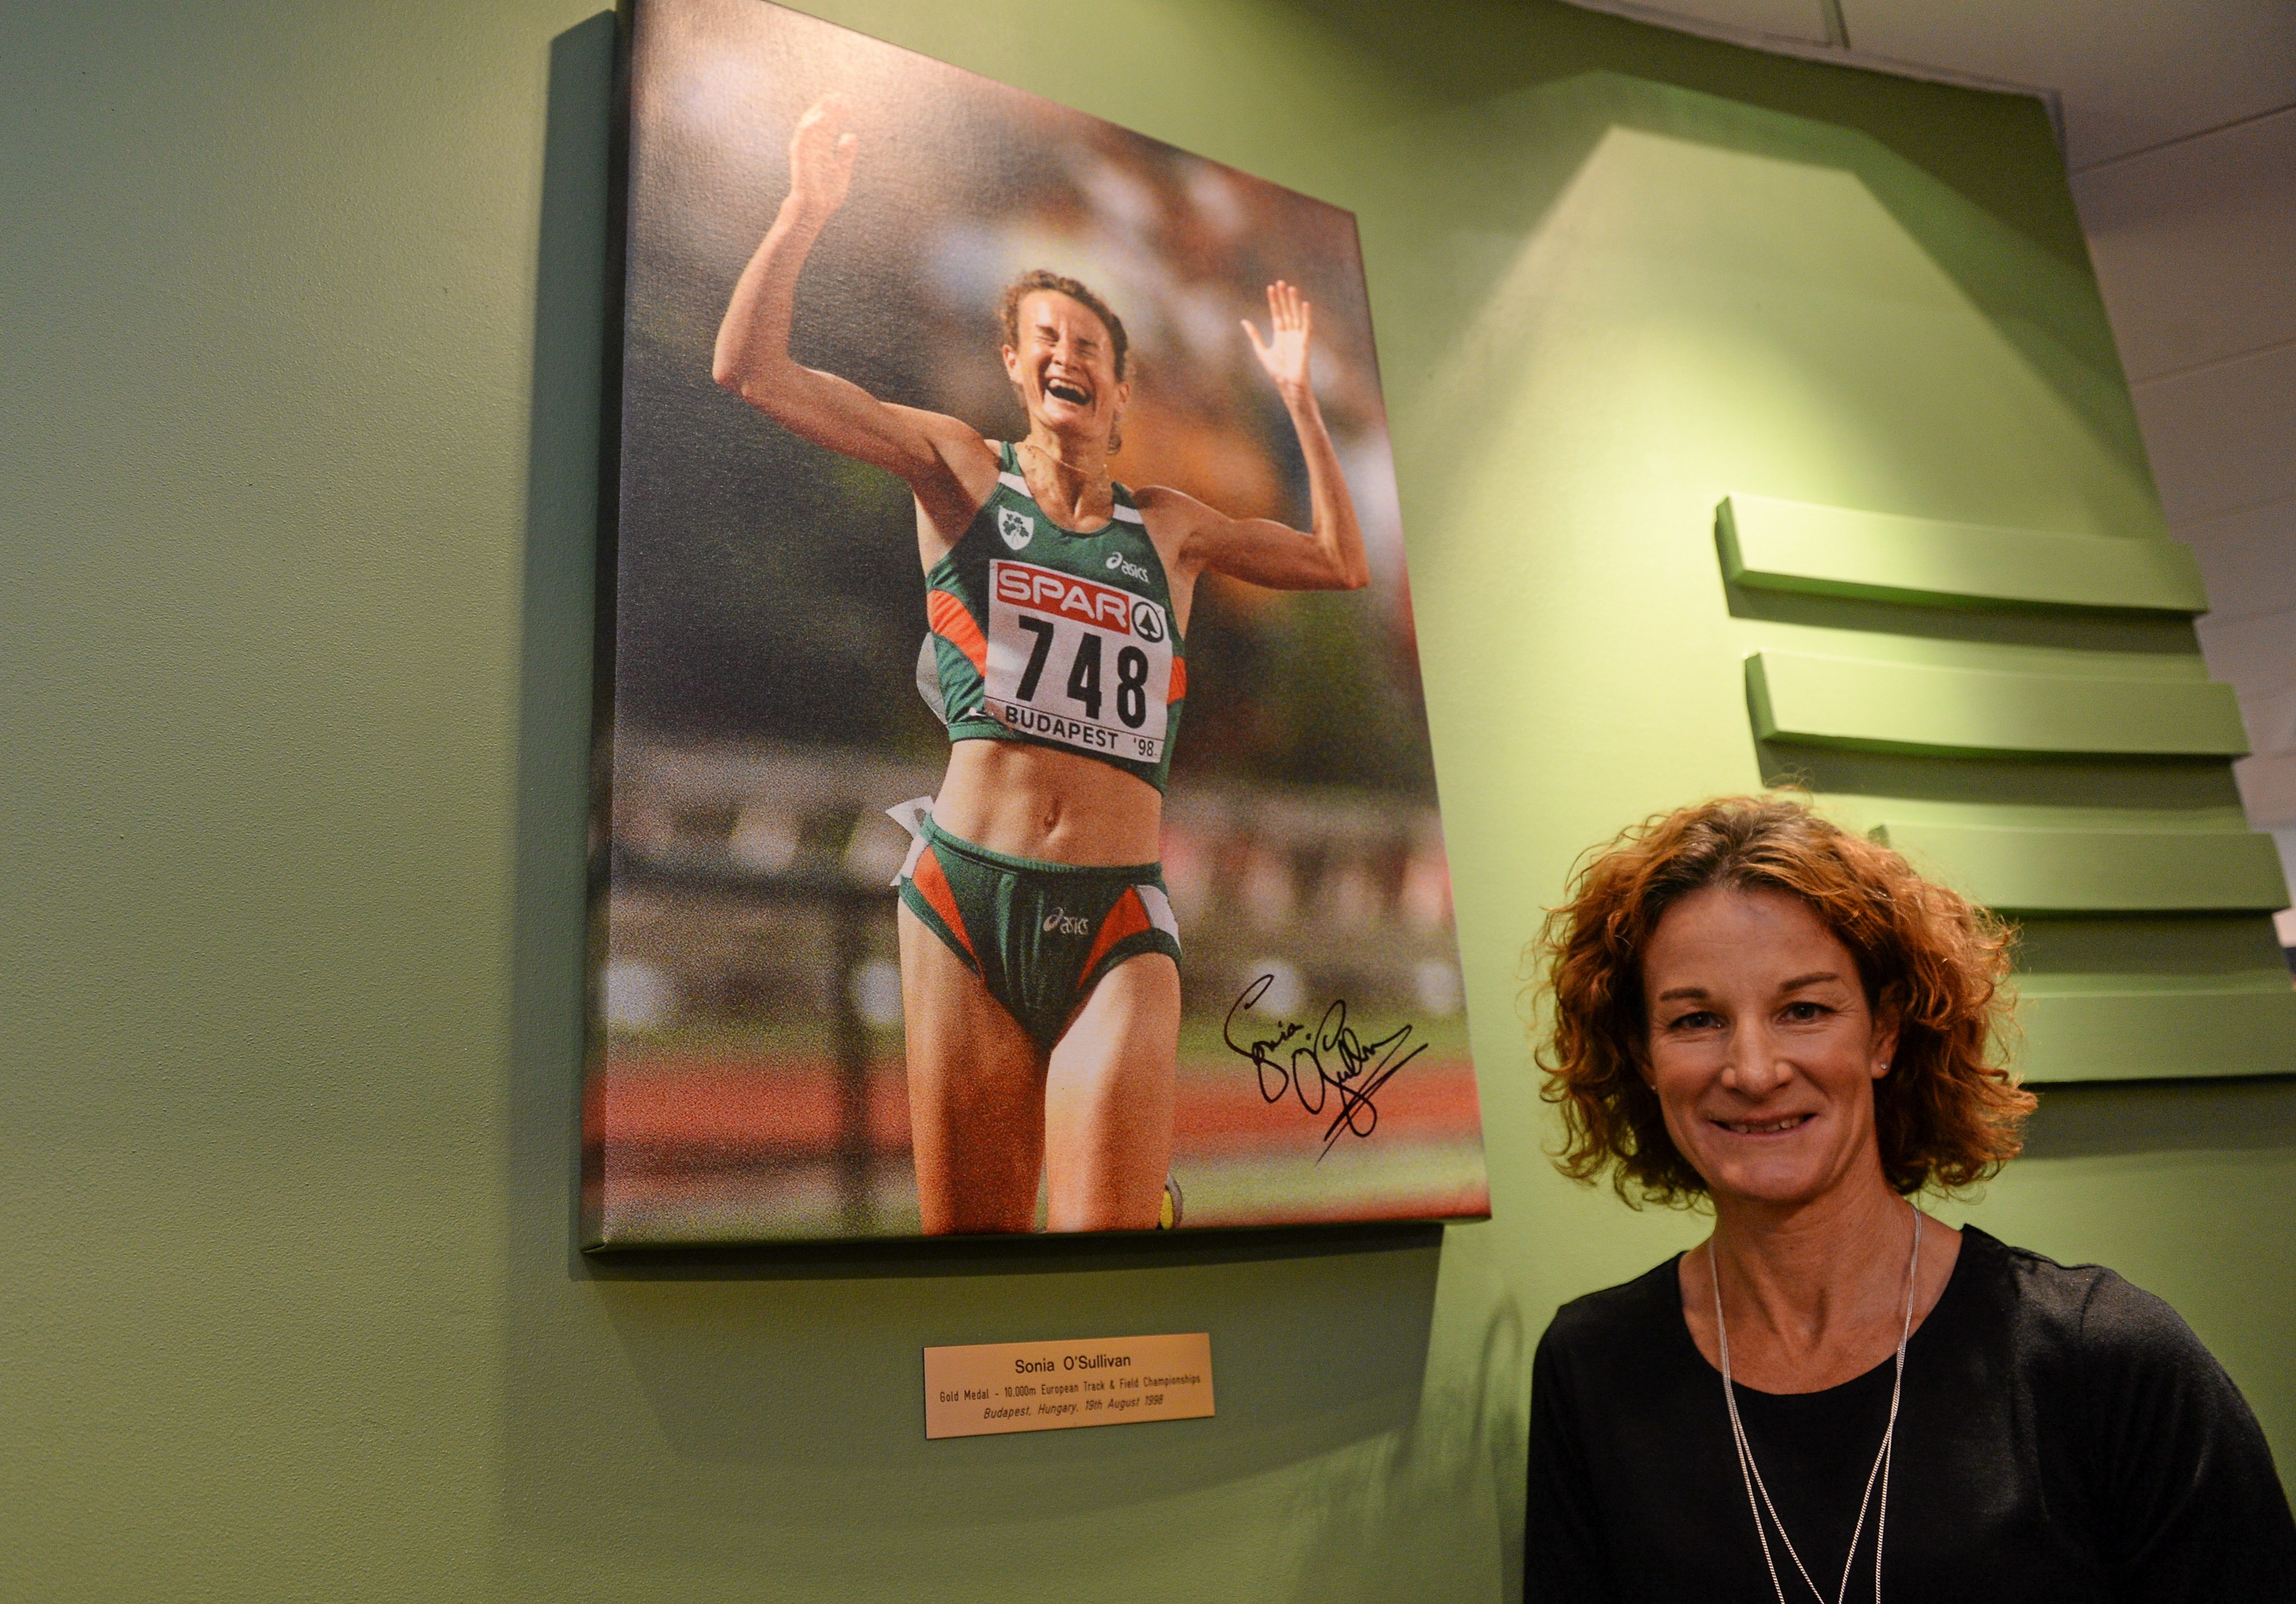 Sonia set to enter Hall of Fame at Irish Life Health Athletics Awards